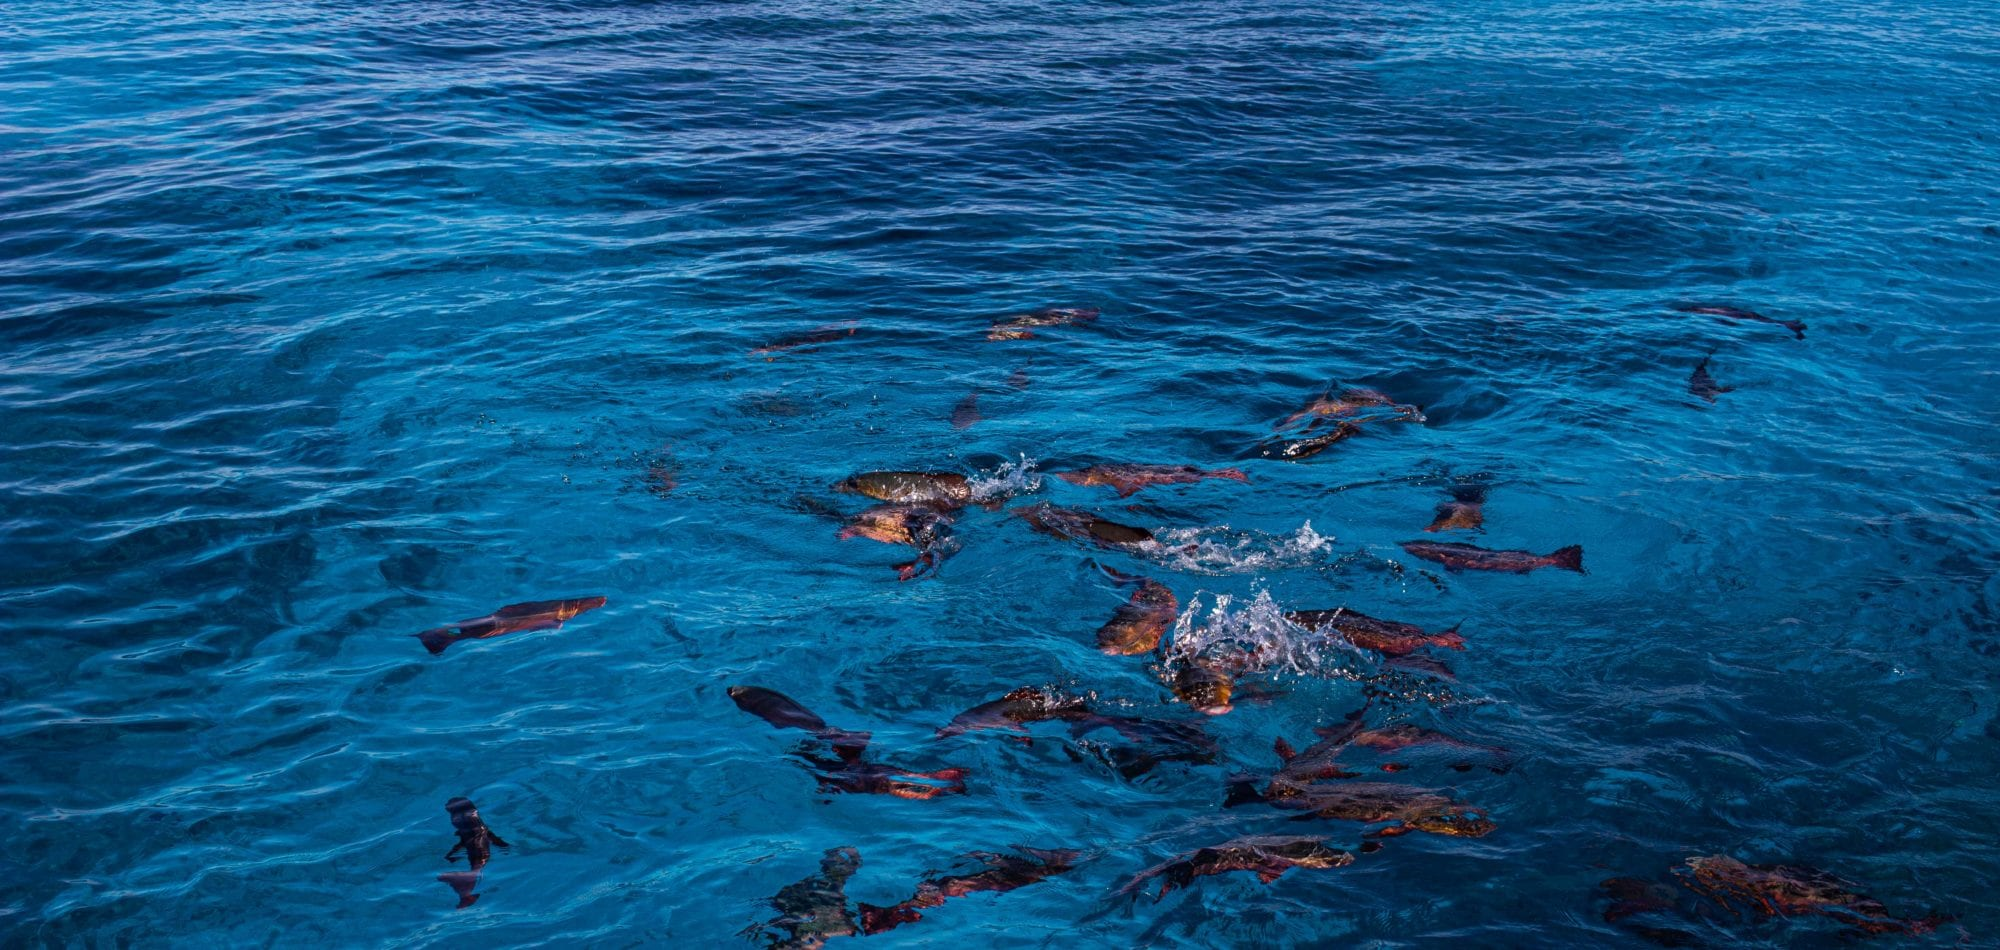 Cairns scuba diving day tour - shoal of fish on the surface